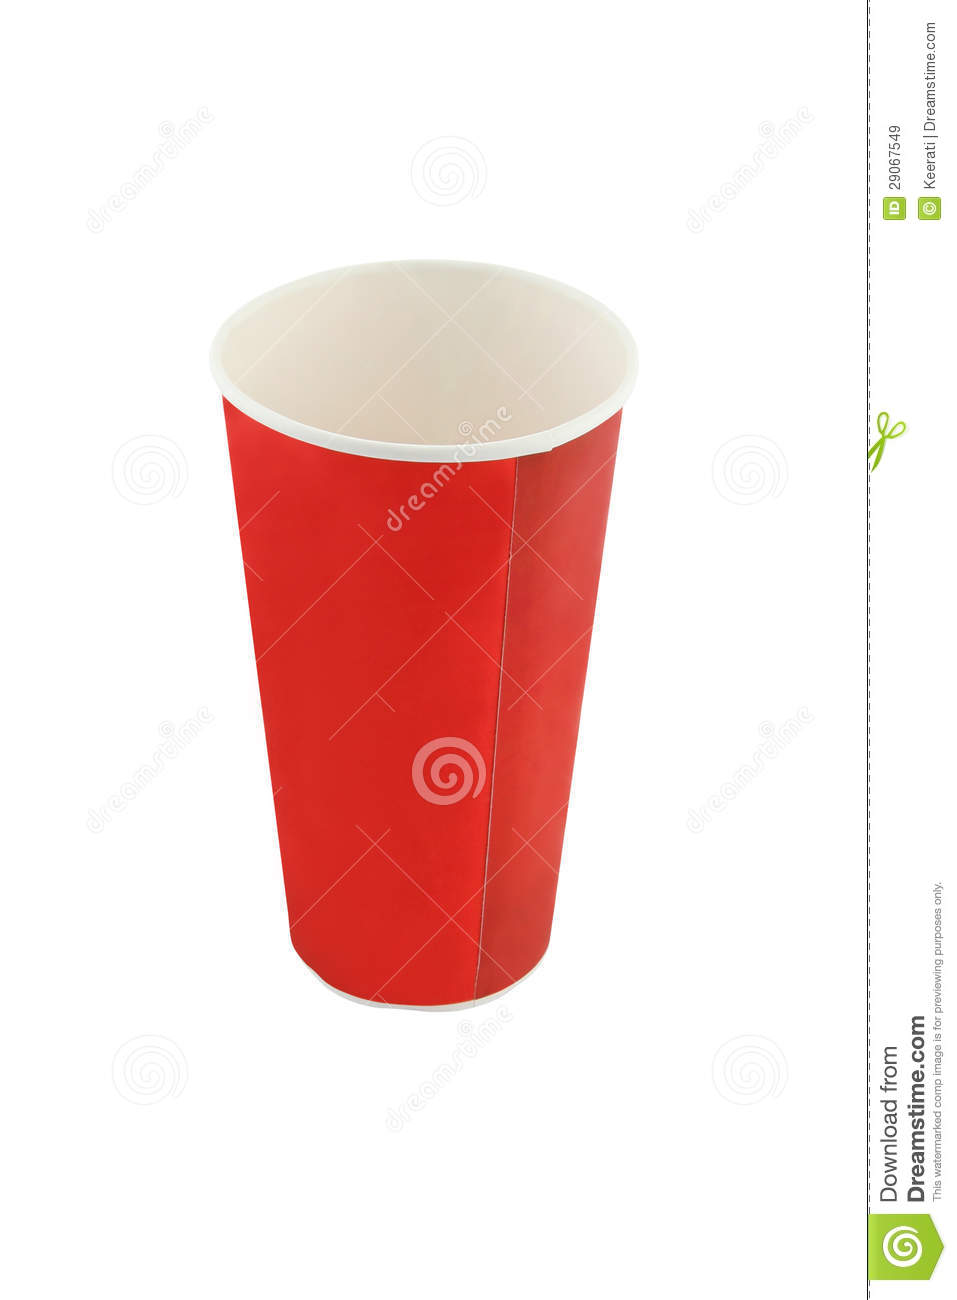 Empty red soda beverage paper cup royalty free stock for Pizza in a mug without baking soda